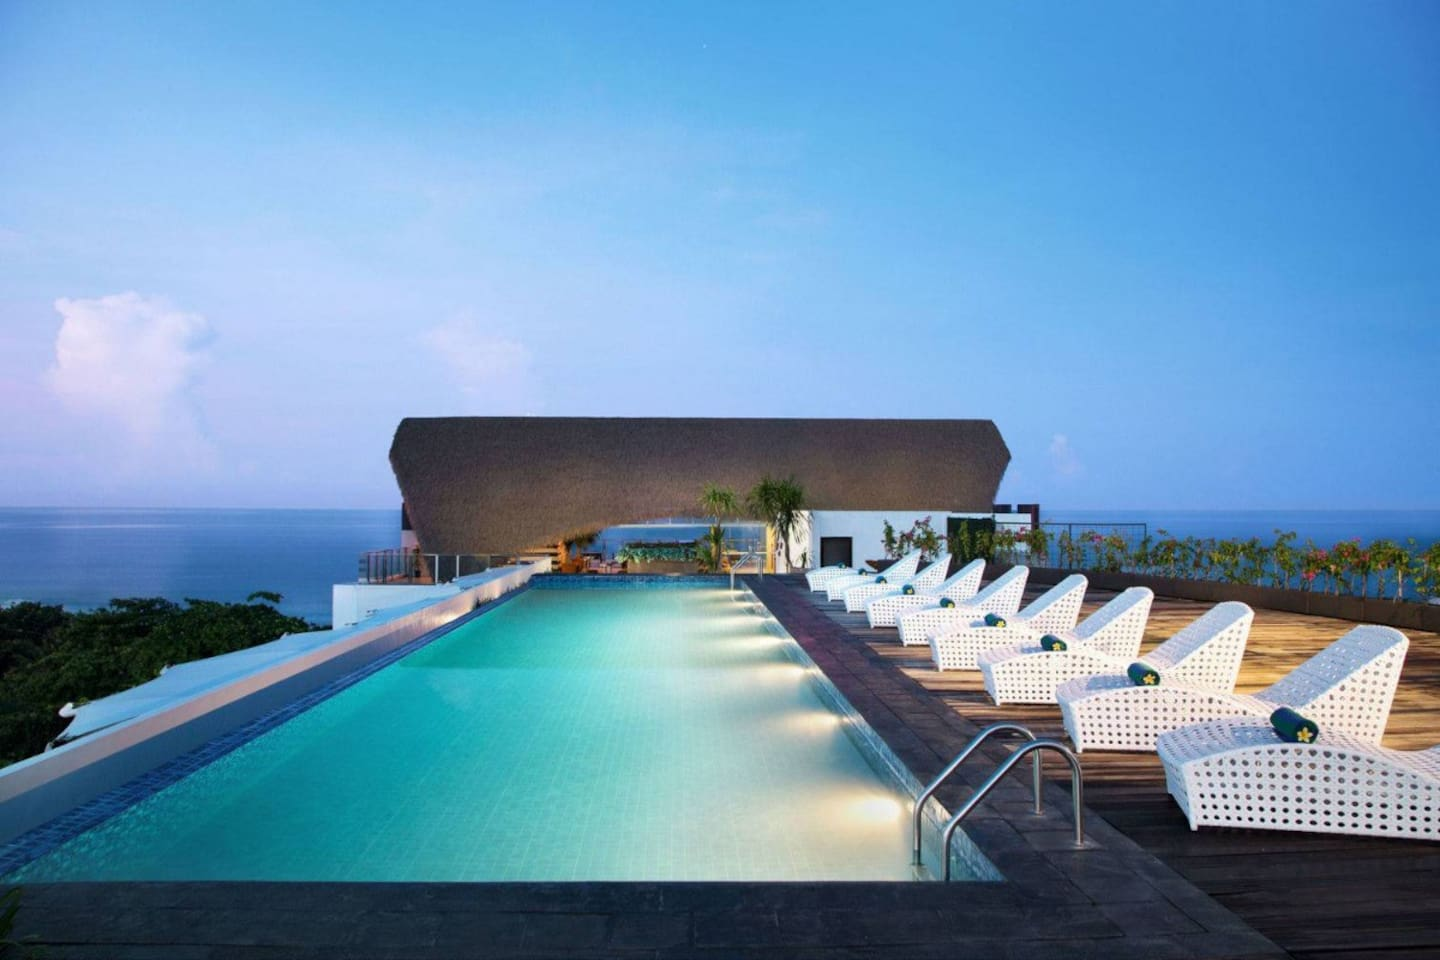 Located in the popular area of Kuta, Citadines Kuta Beach Bali offers modern accommodation with a rooftop swimming pool, a fitness centre, and spa facilities.